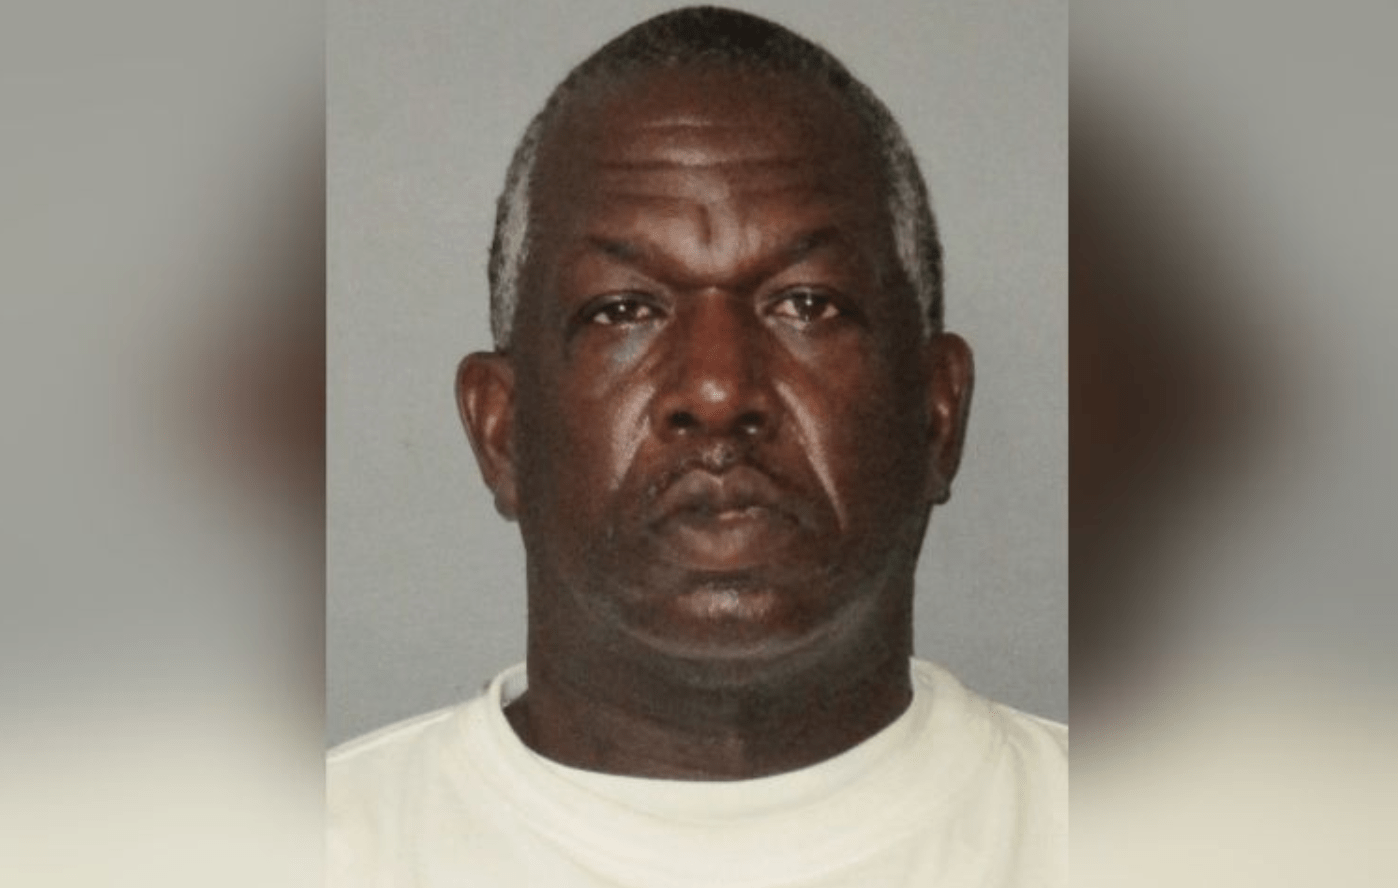 Man named Michael Jackson arrested for sexually assaulting 8-year-old girl